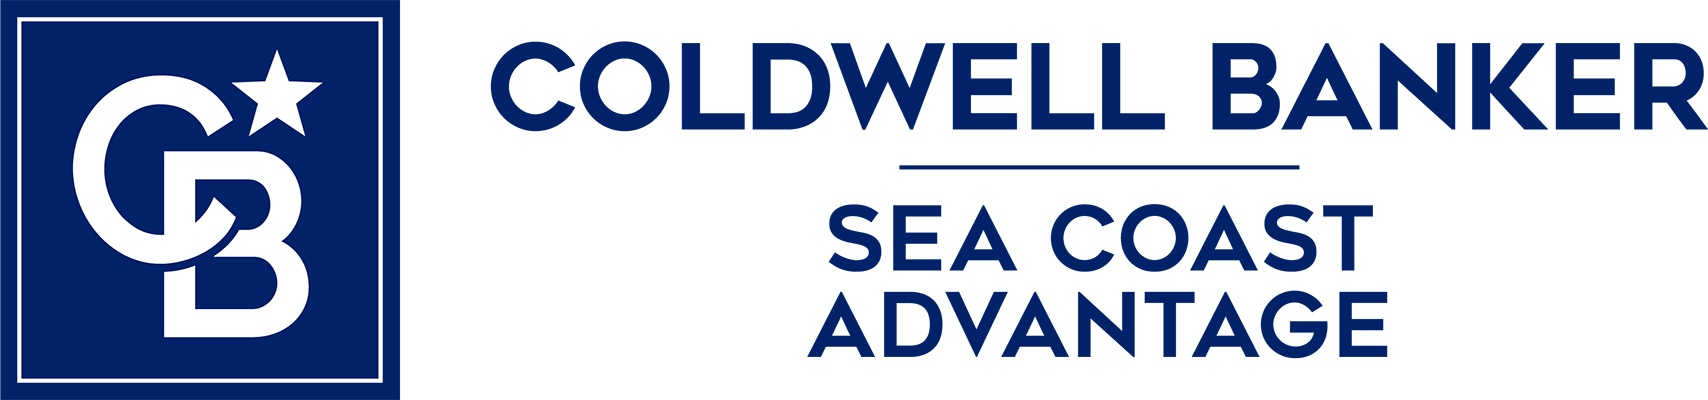 Dianne McBride - Coldwell Banker Sea Coast Advantage Realty